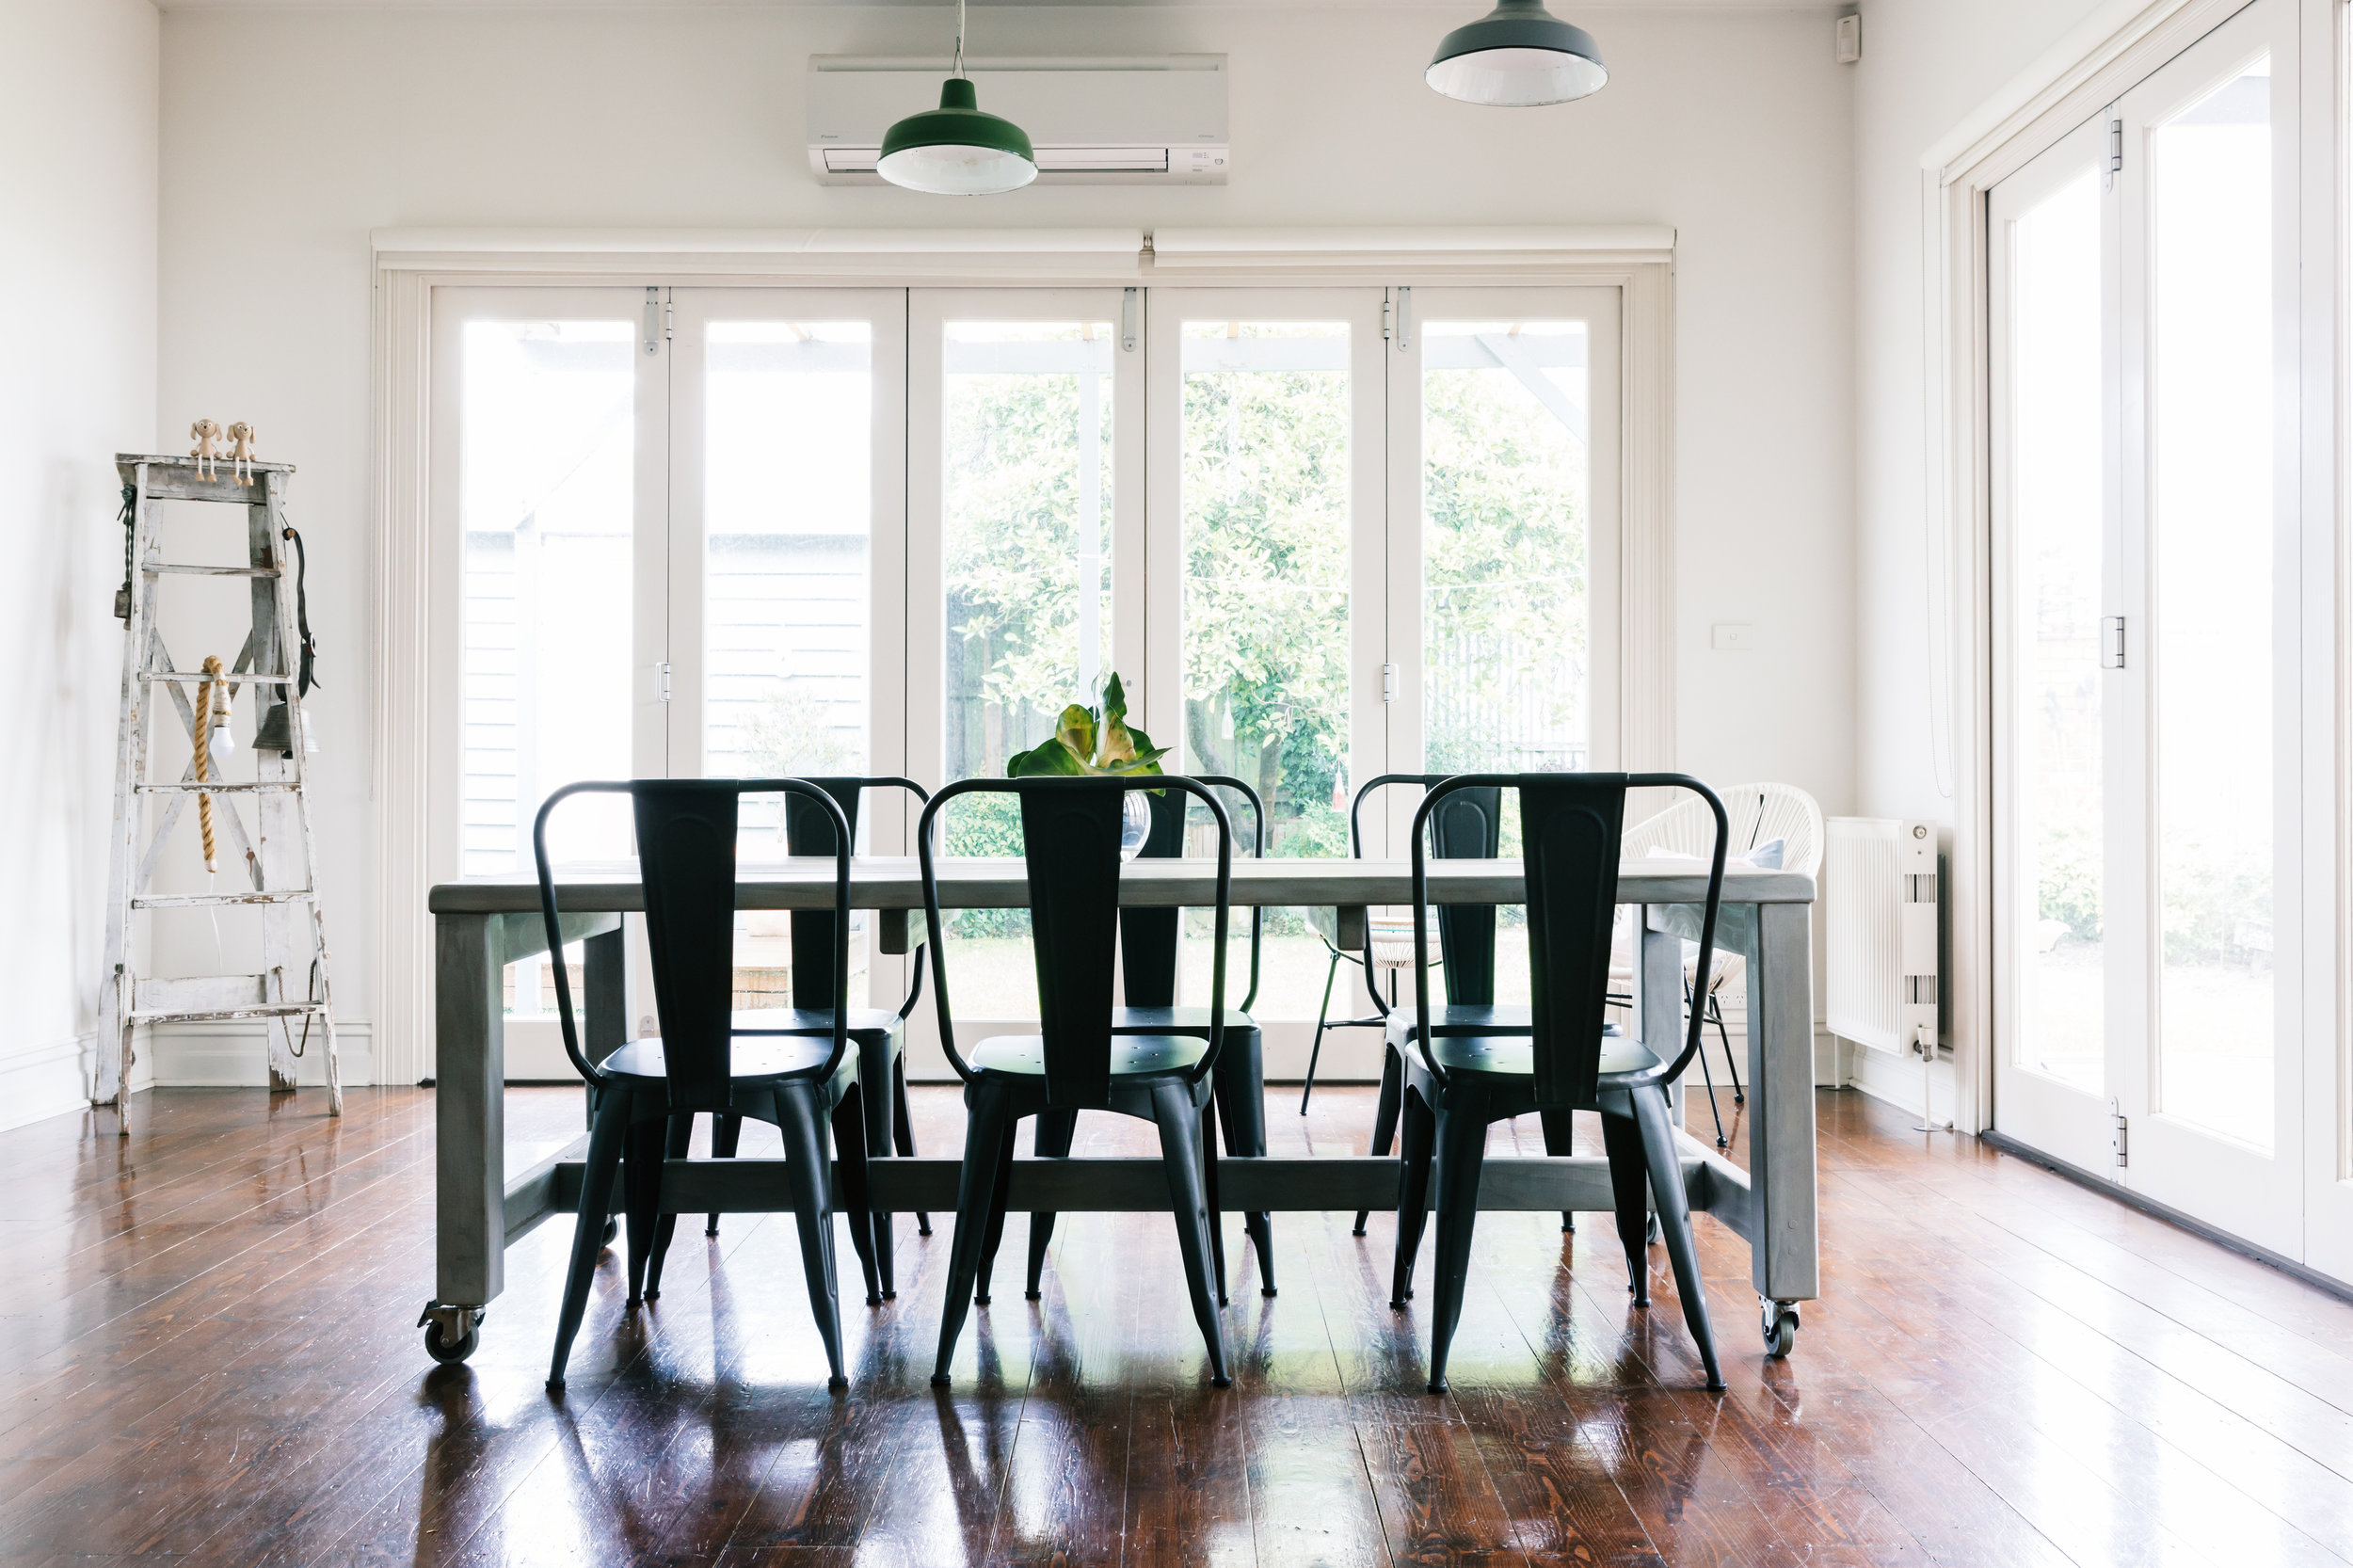 A Financial Planner's guide to saving for a house - October 2017